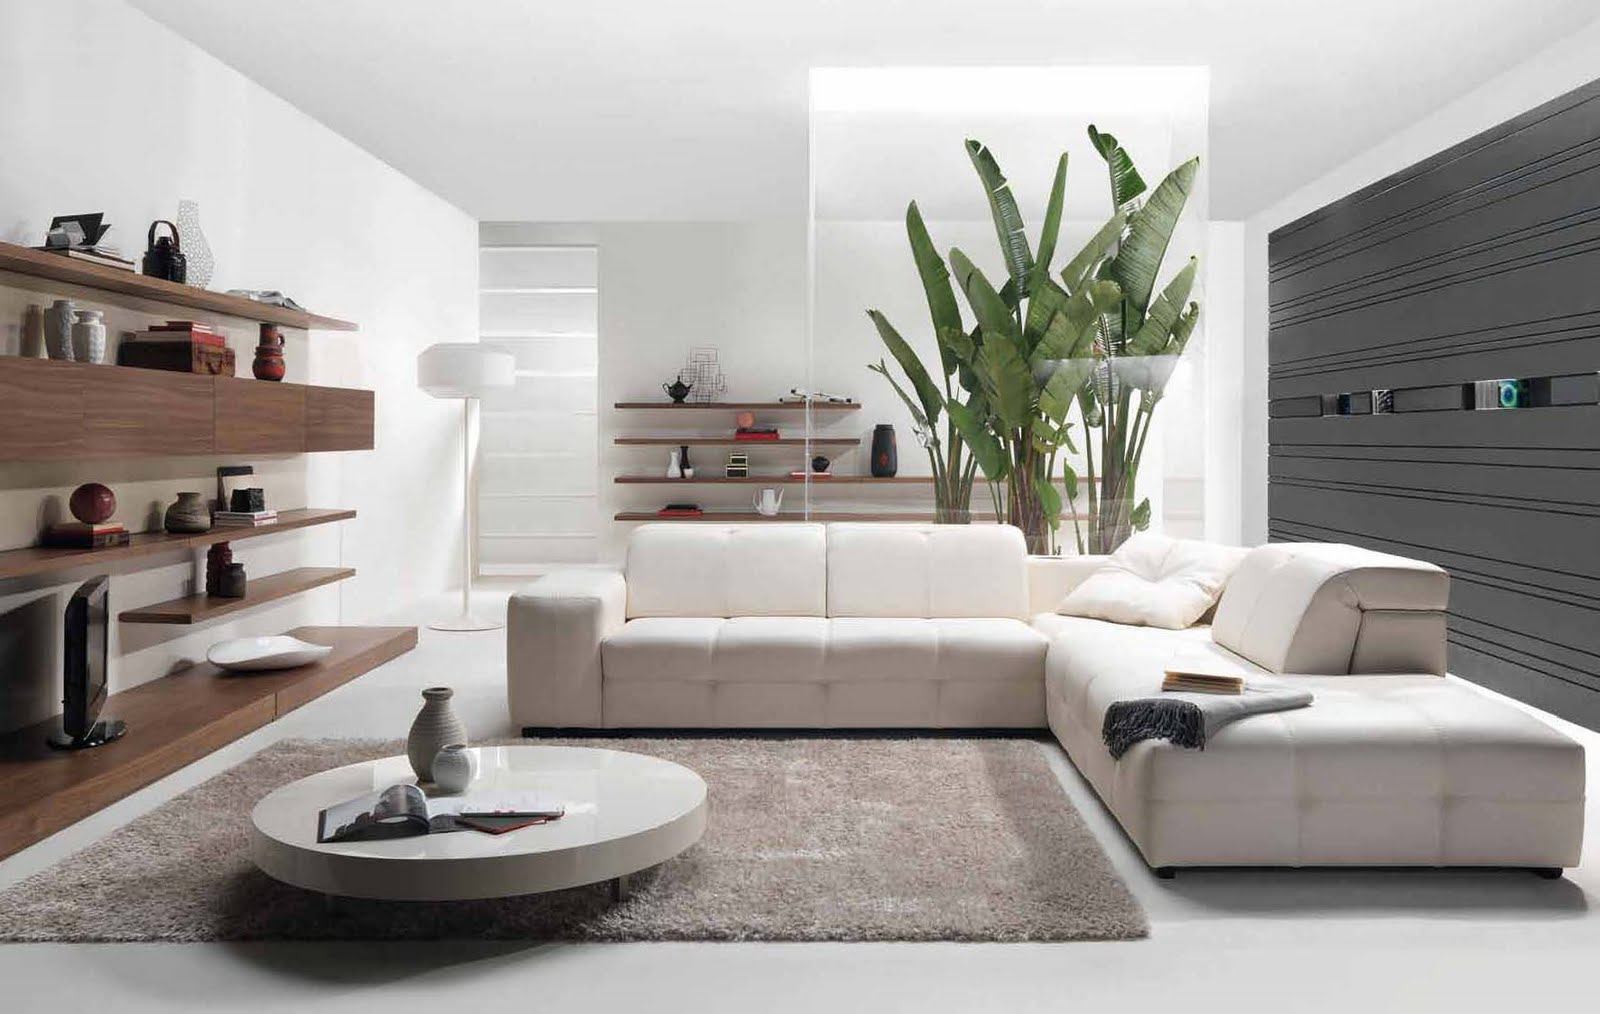 Four small living room ideas that maximize space